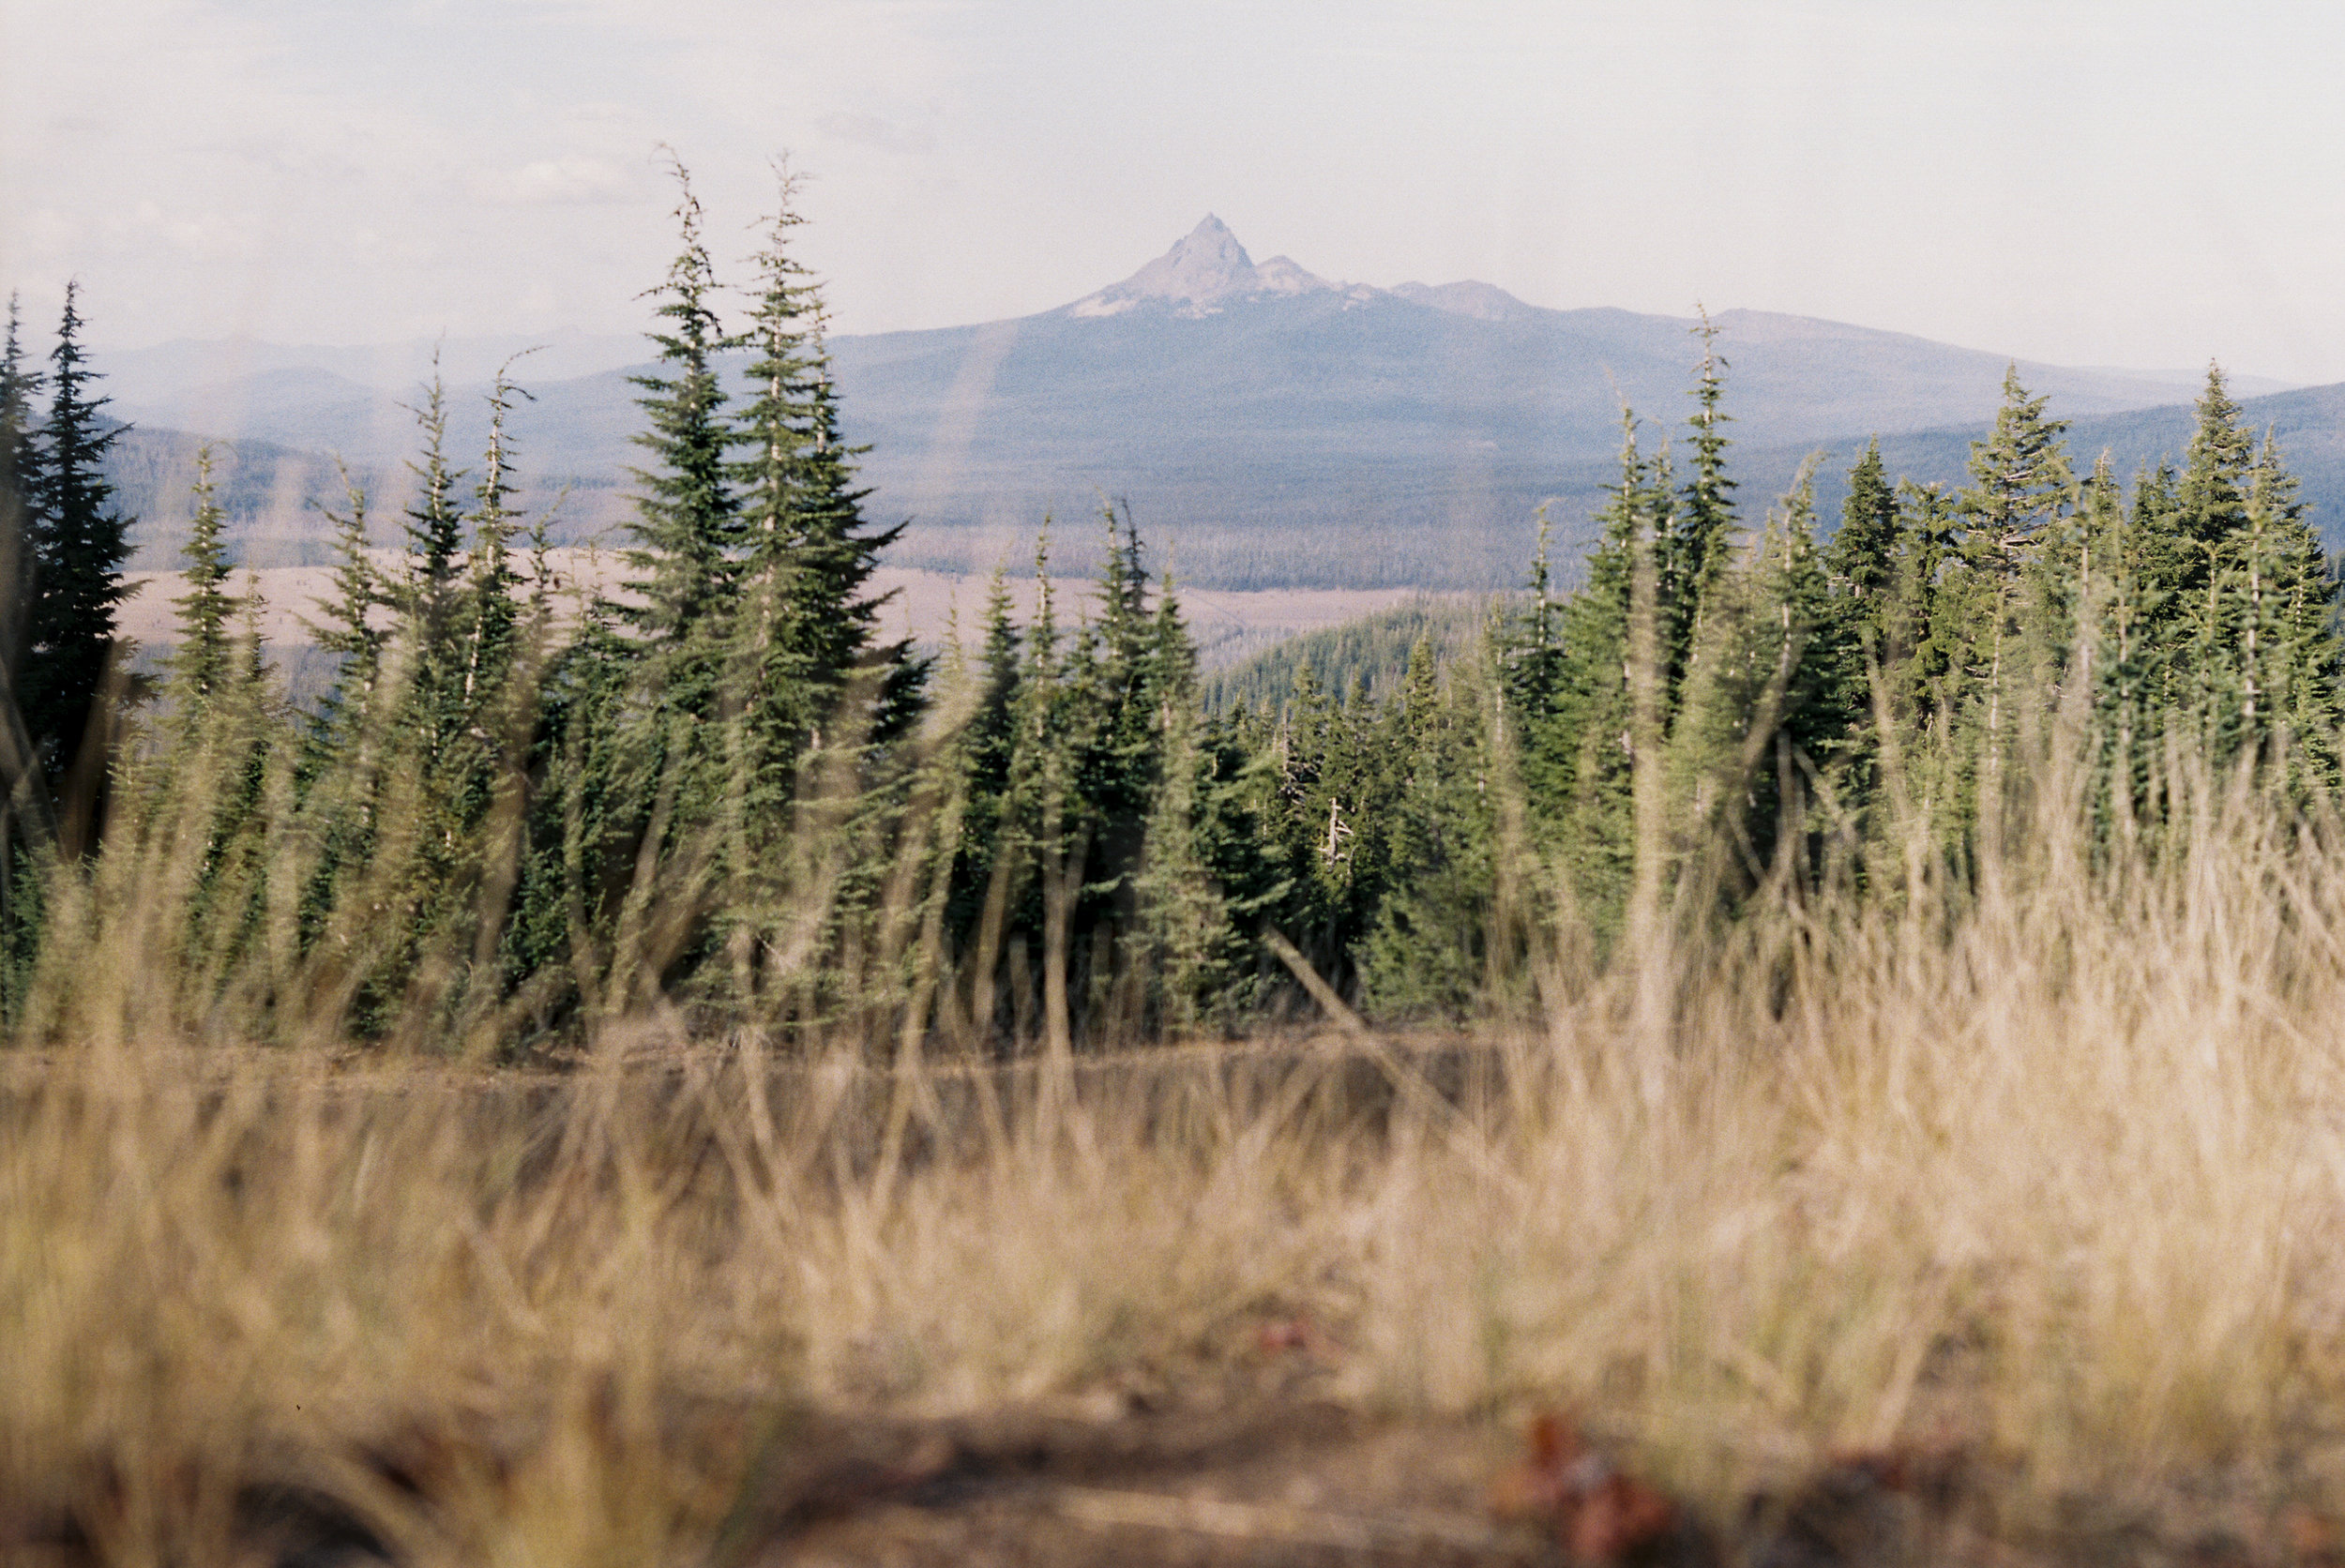 Mount Jefferson in the distance. Crater Lake National Park, OR